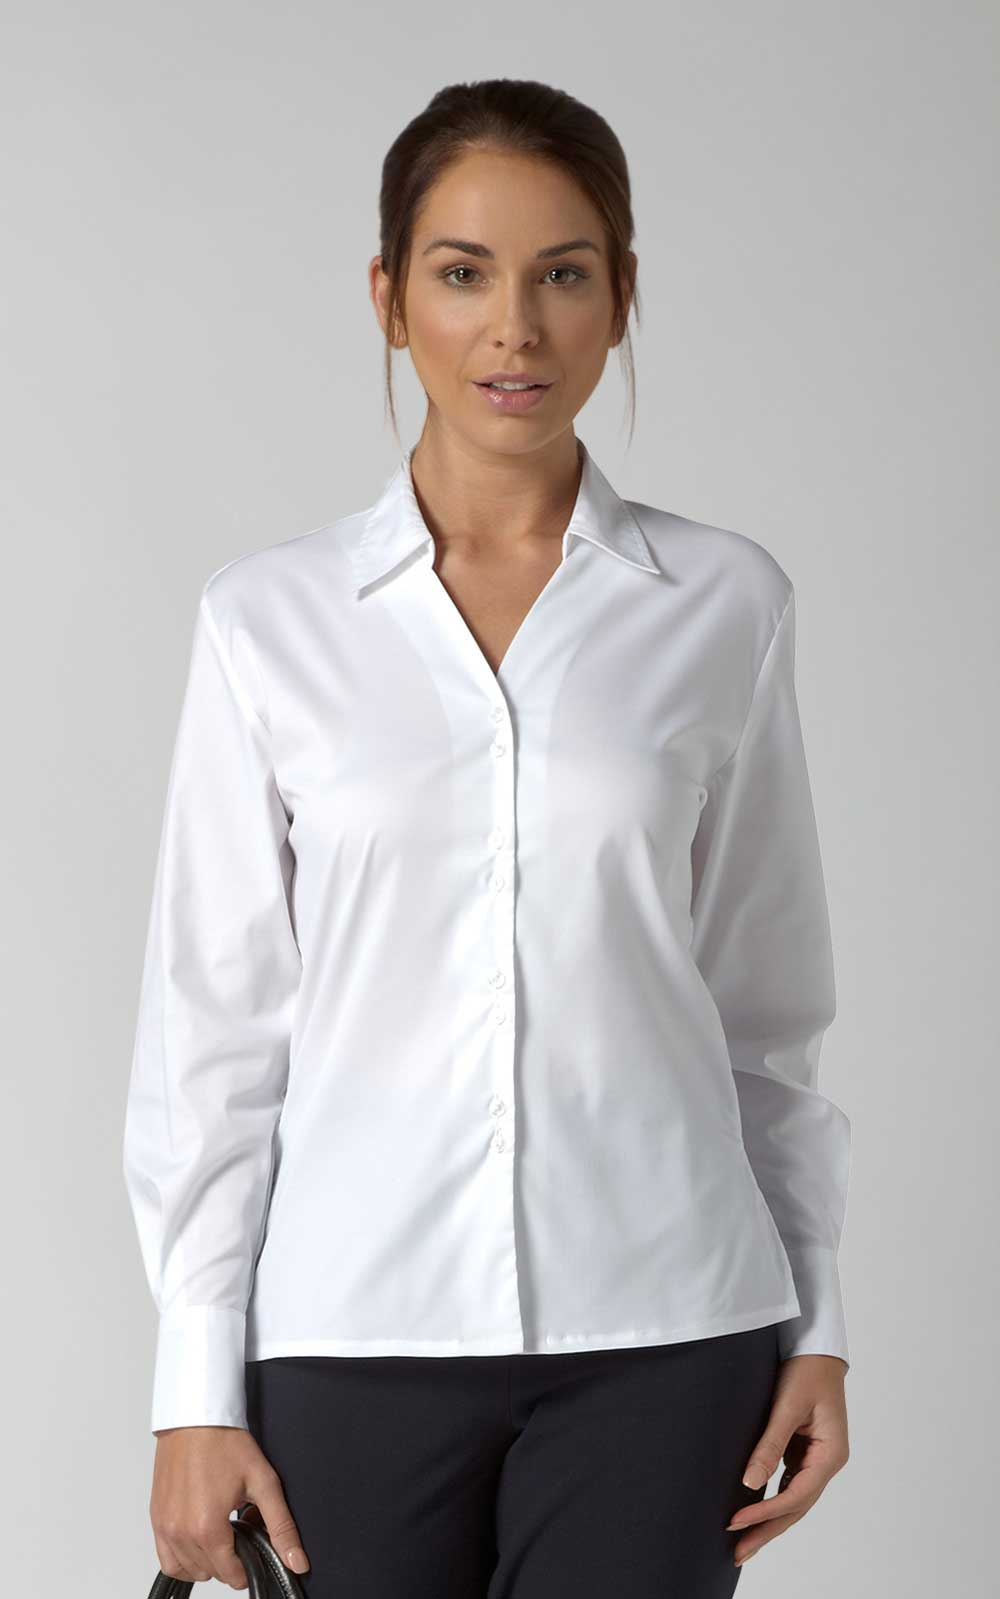 Discover Hobbs' workwear for women. Our collection features smart office appropriate dresses, suits, blouses, & accessories to dress for success. Shop now. Skip to content Skip to navigation.